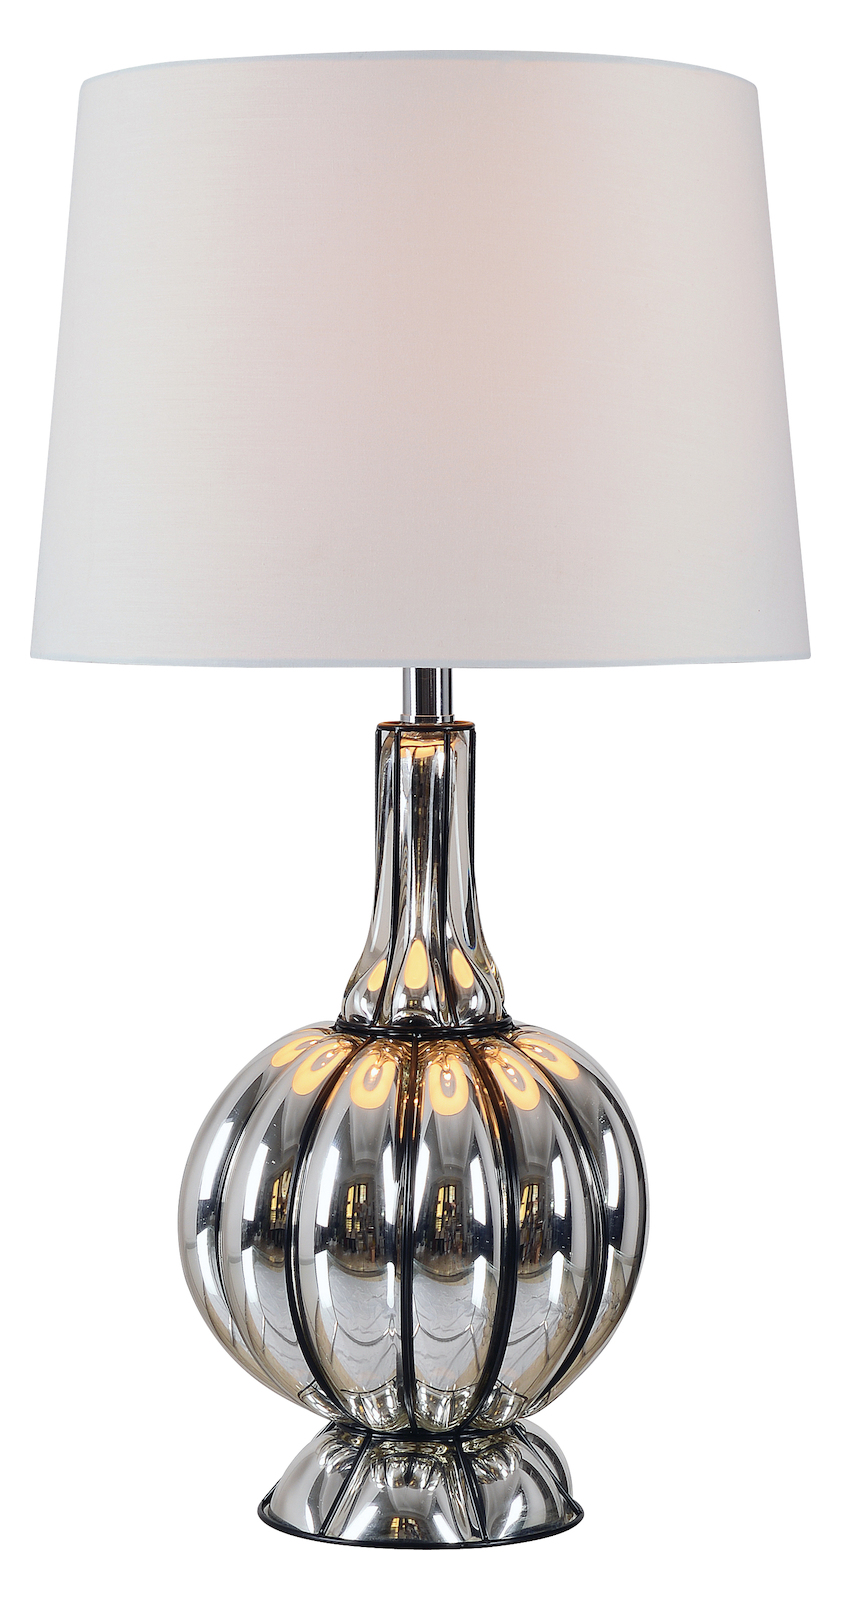 Kenroy Home 32809MER Table Lamp